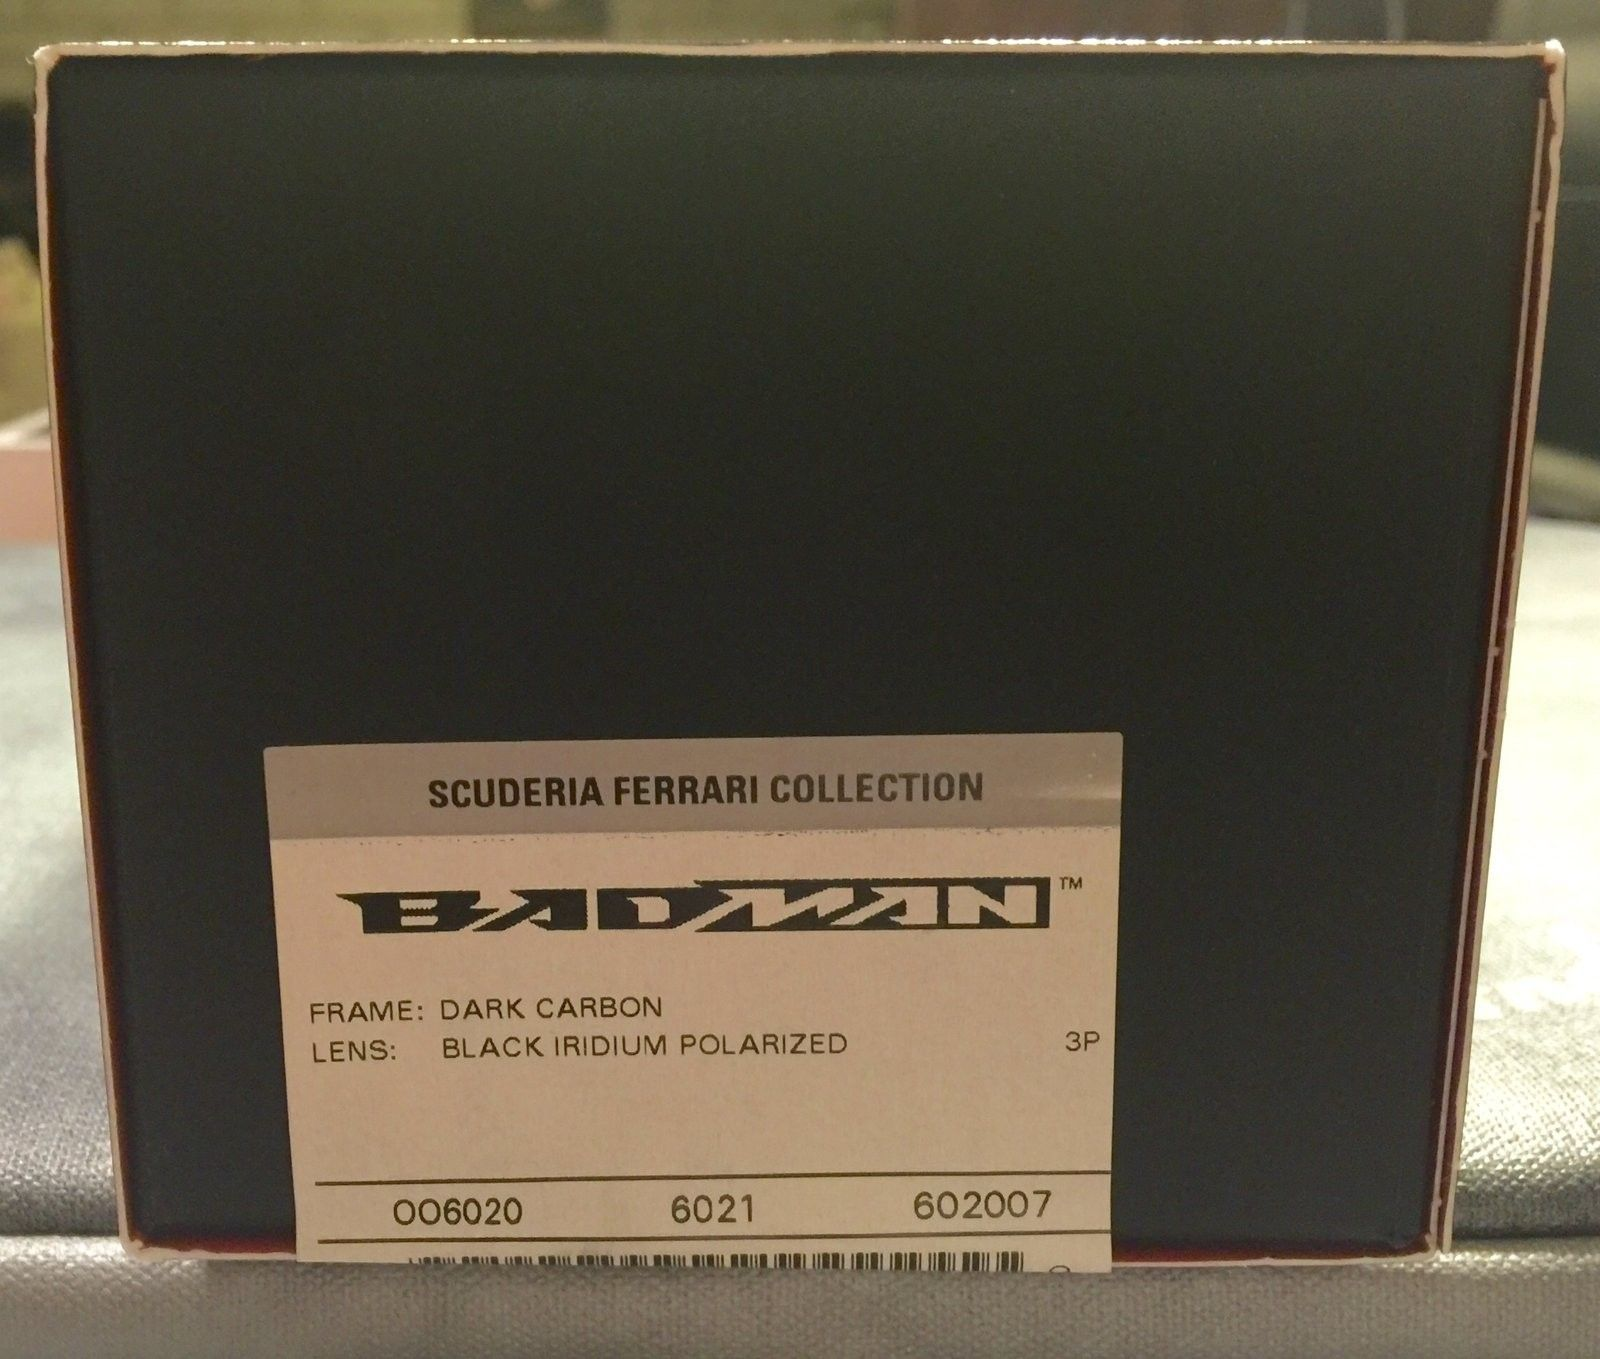 "BNIB Badman Scuderia Ferrari Colection "" Factory Sealed Box "" - image.jpeg"